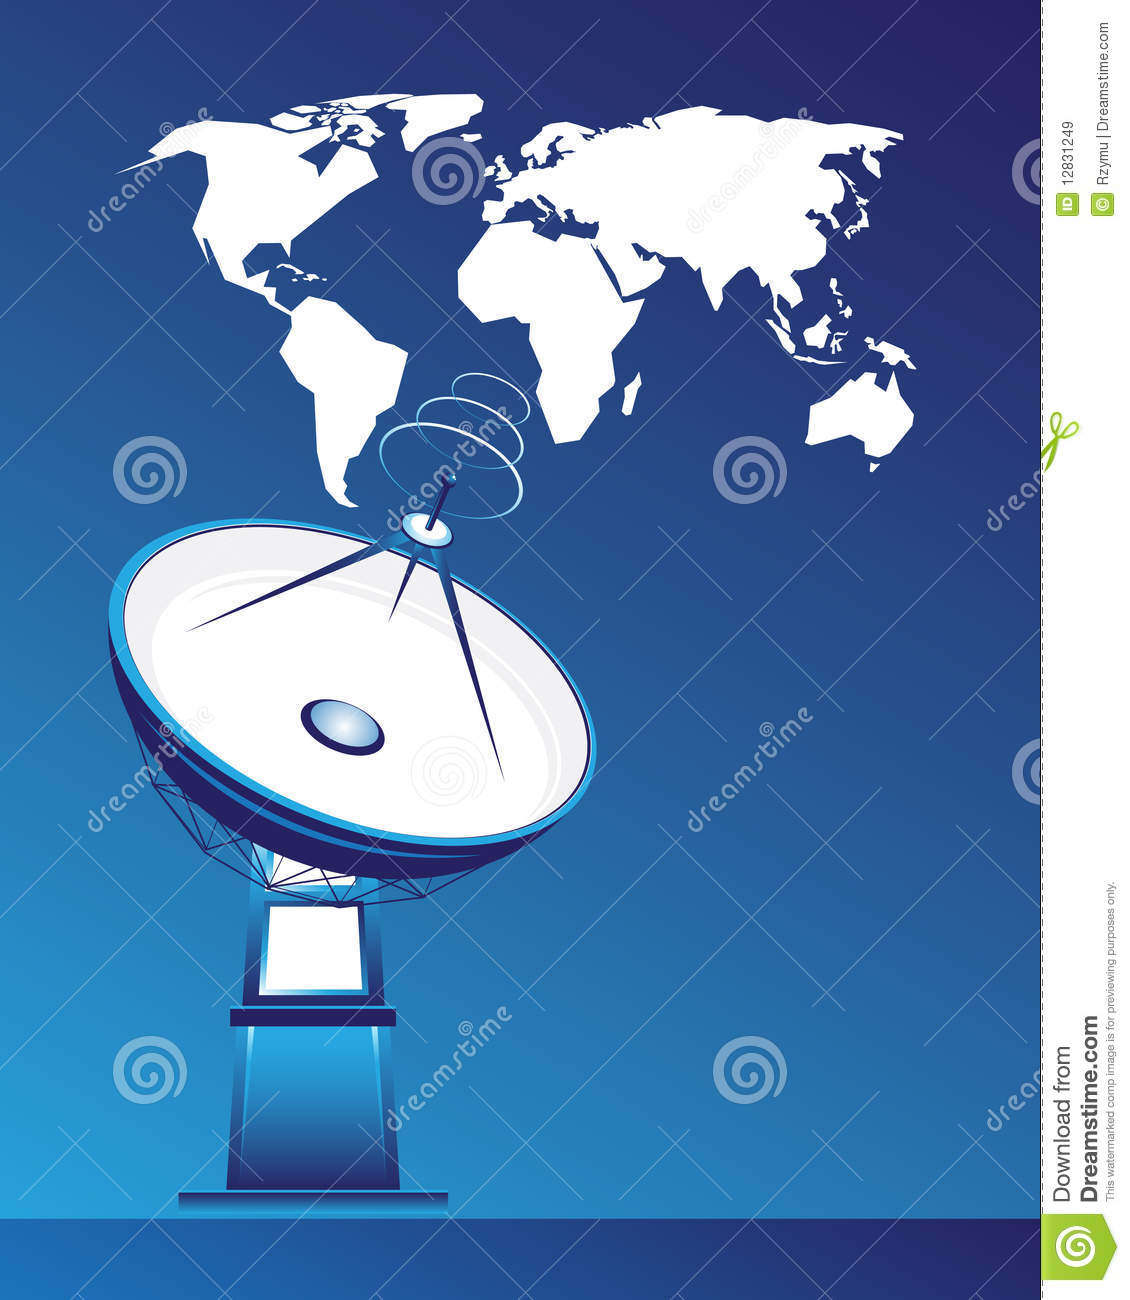 Satellite Dish And Map Of The World Stock Vector ... on dish sports, geographical map, dish mexico, cable map, dish movies, verizon map, dish food,